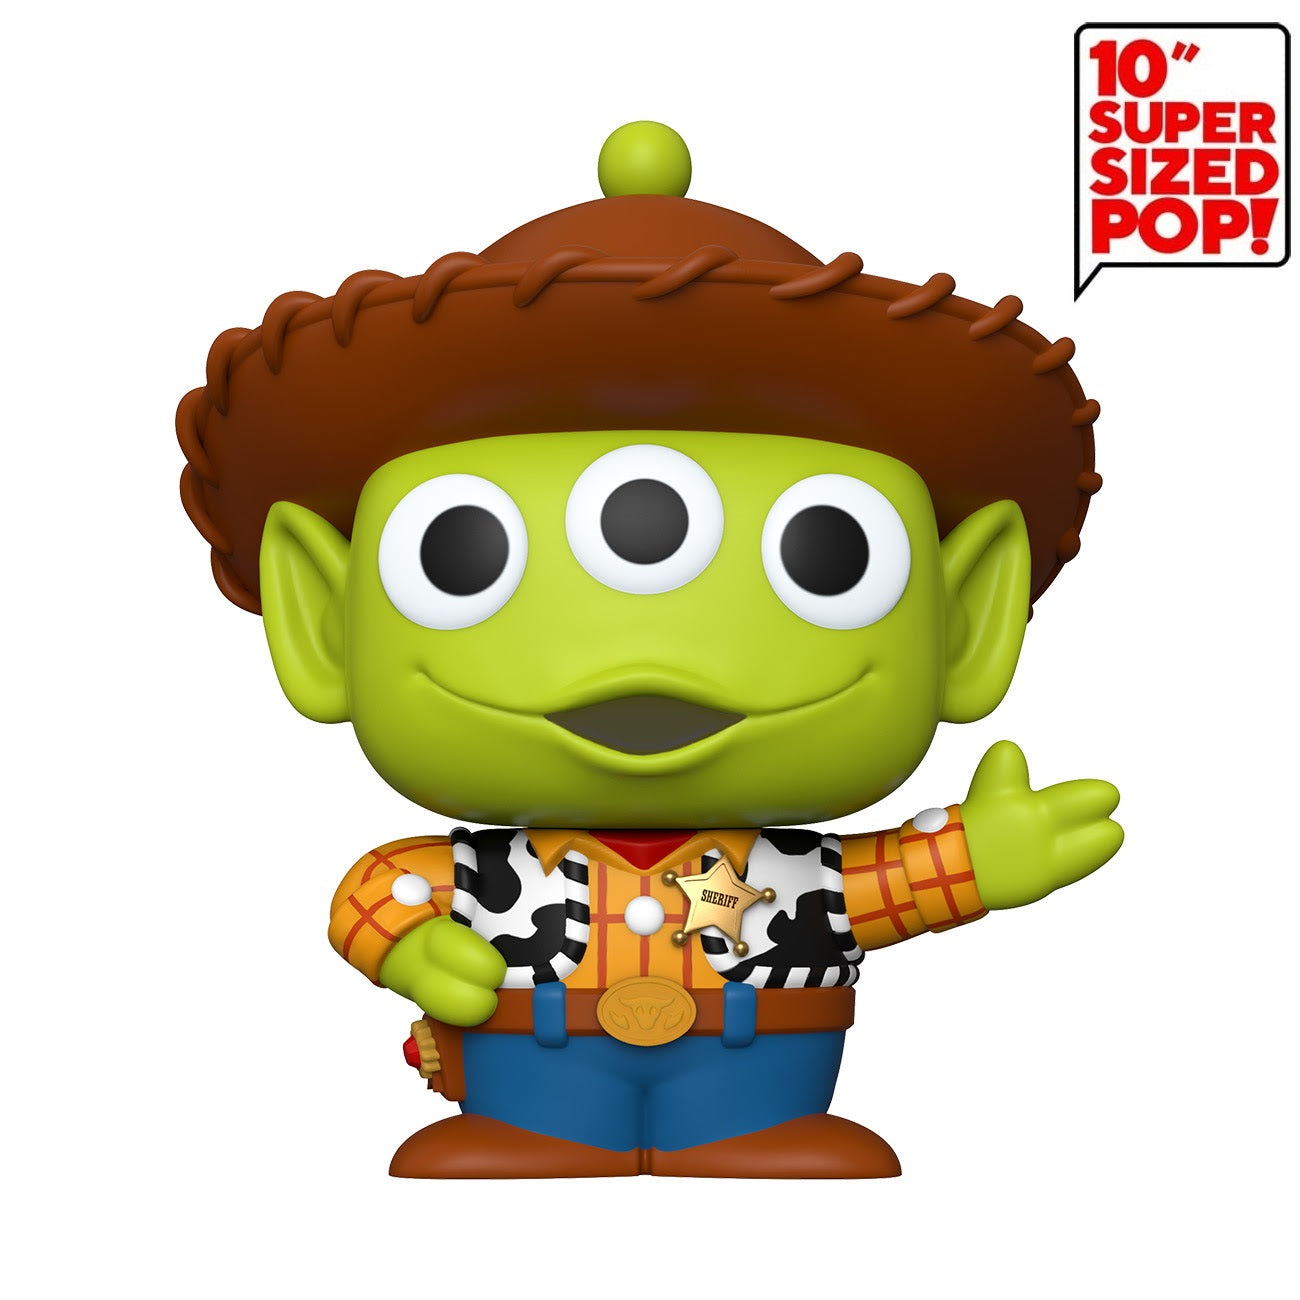 Disney Pop! Vinyl Figure Pixar Alien Remix Woody [10 inch] - Fugitive Toys